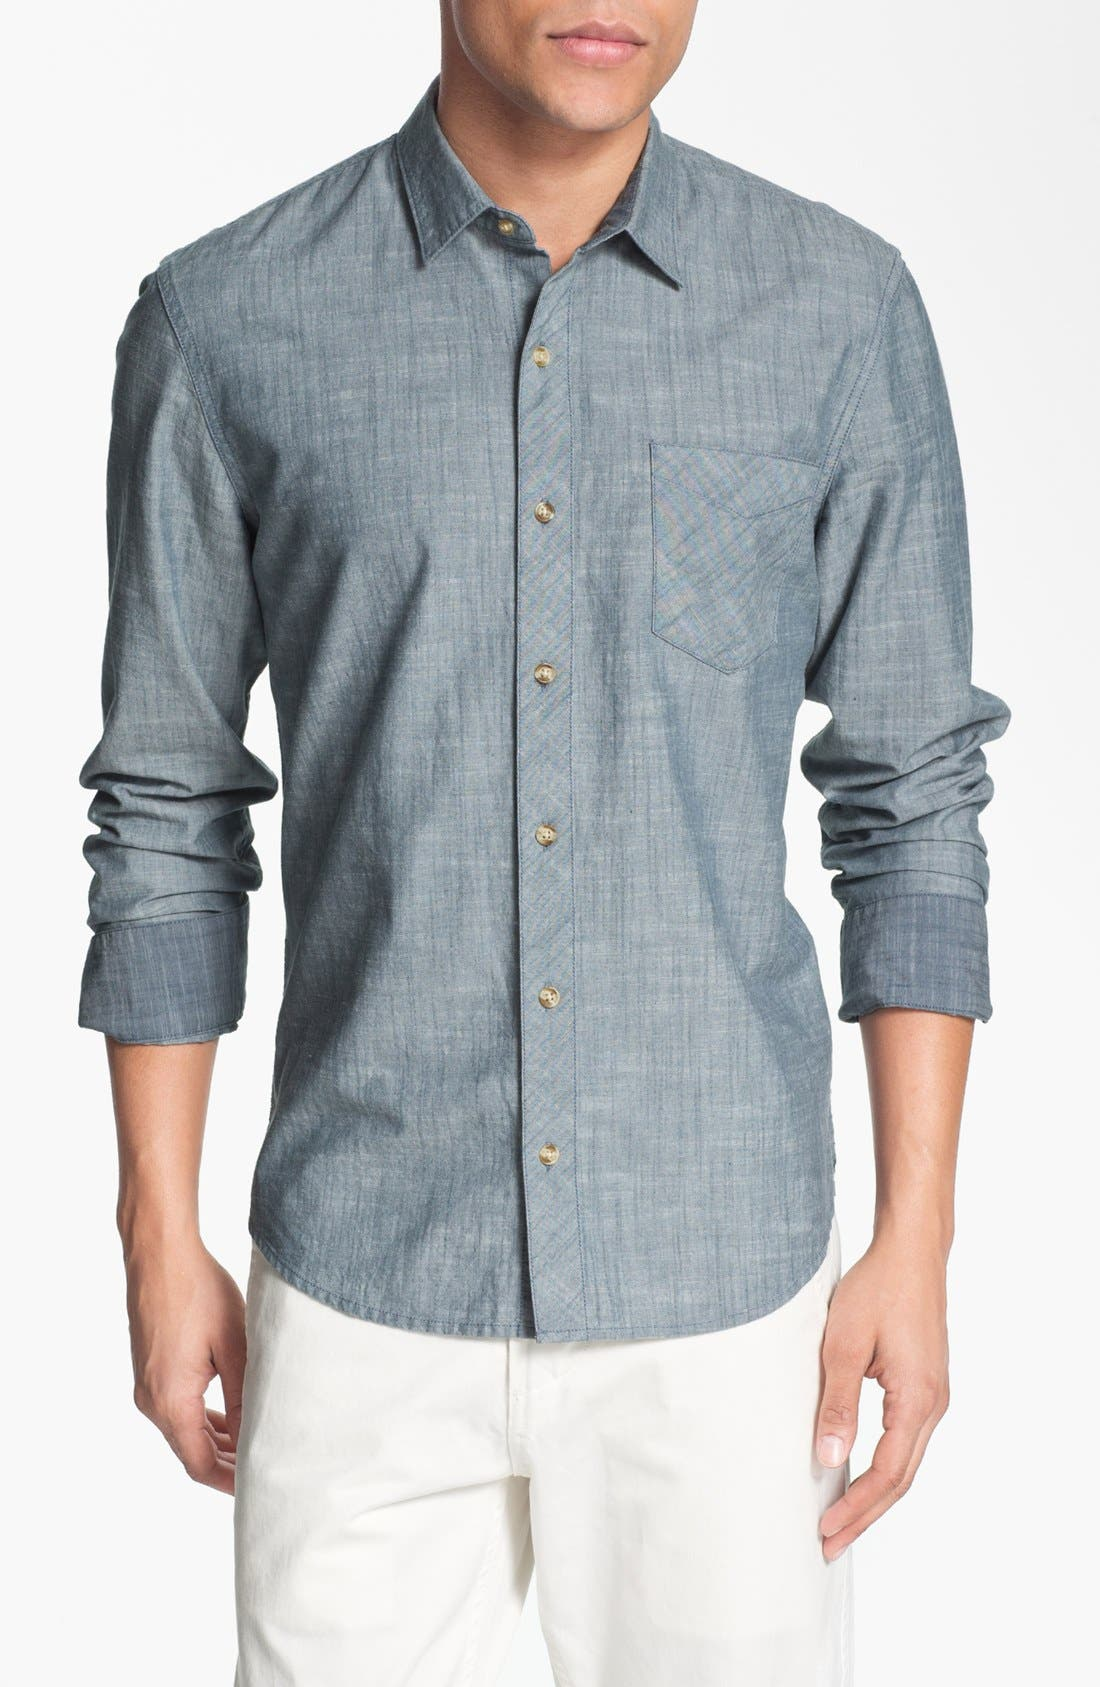 Alternate Image 1 Selected - 1901 Regular Fit Chambray Sport Shirt